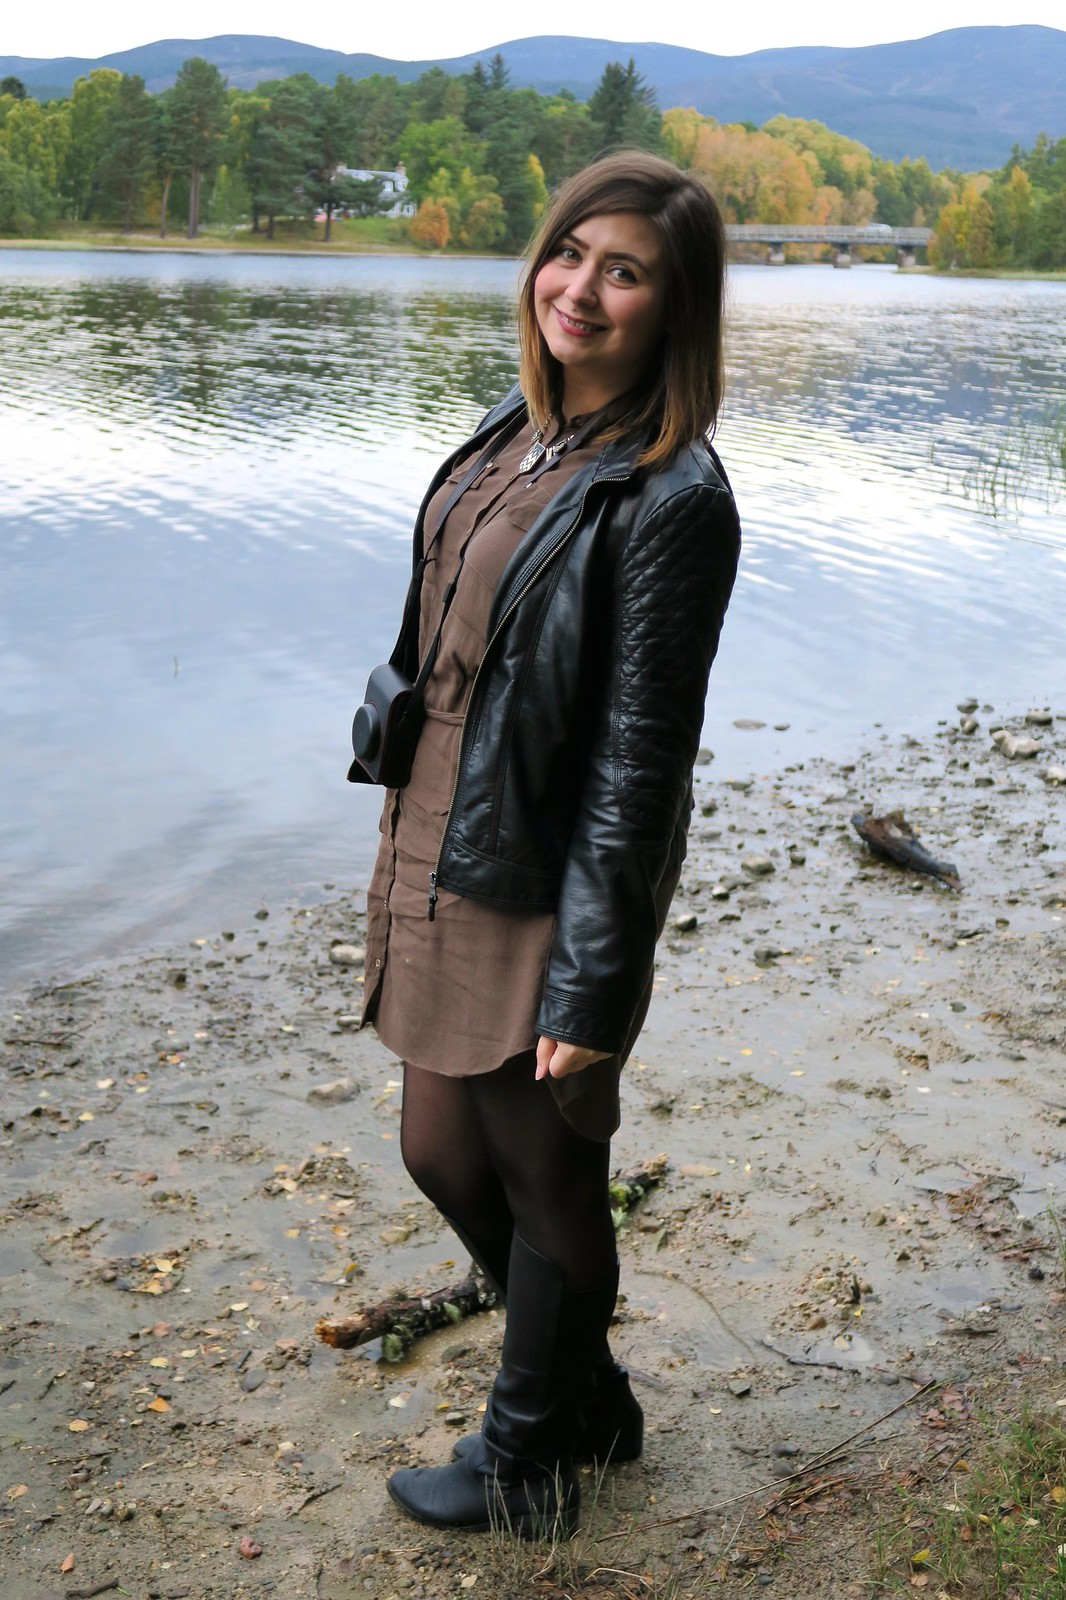 uk fashion lifestyle blogger kingussie scotland trip river island dress